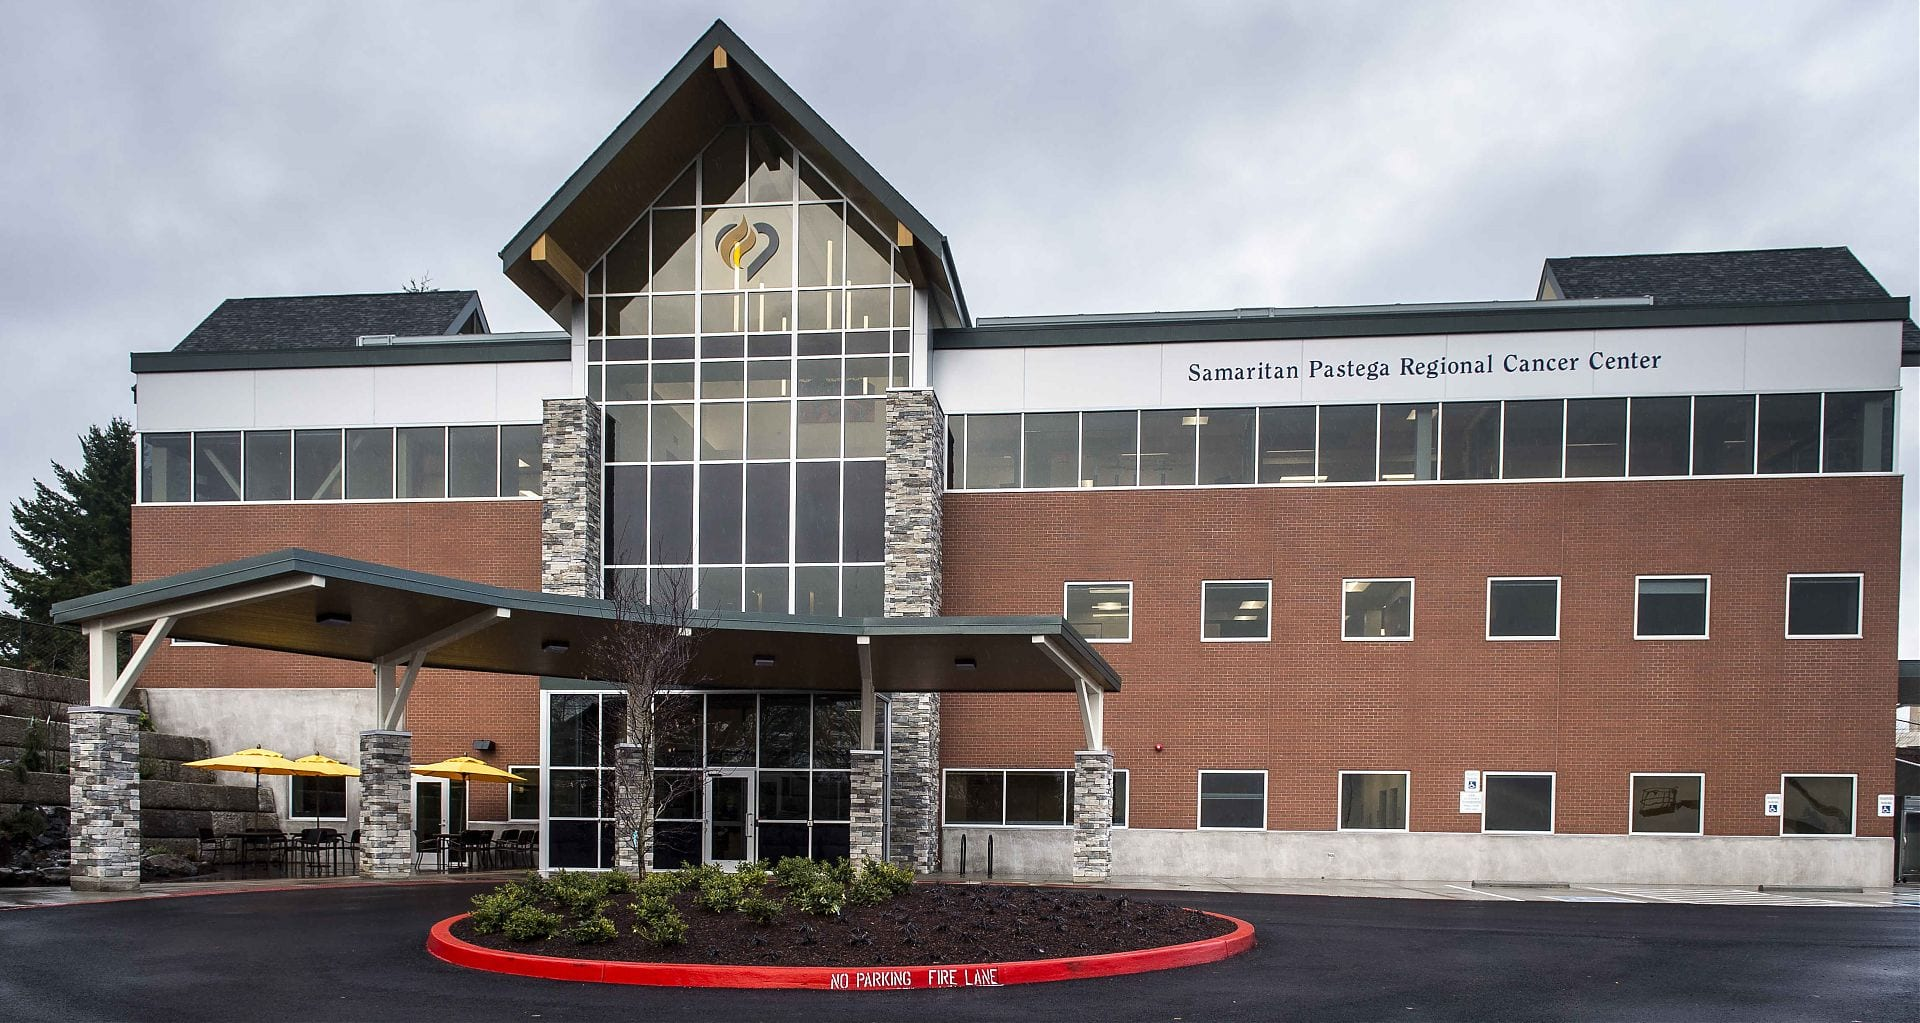 Samaritan Pastega Regional Cancer Center Exterior